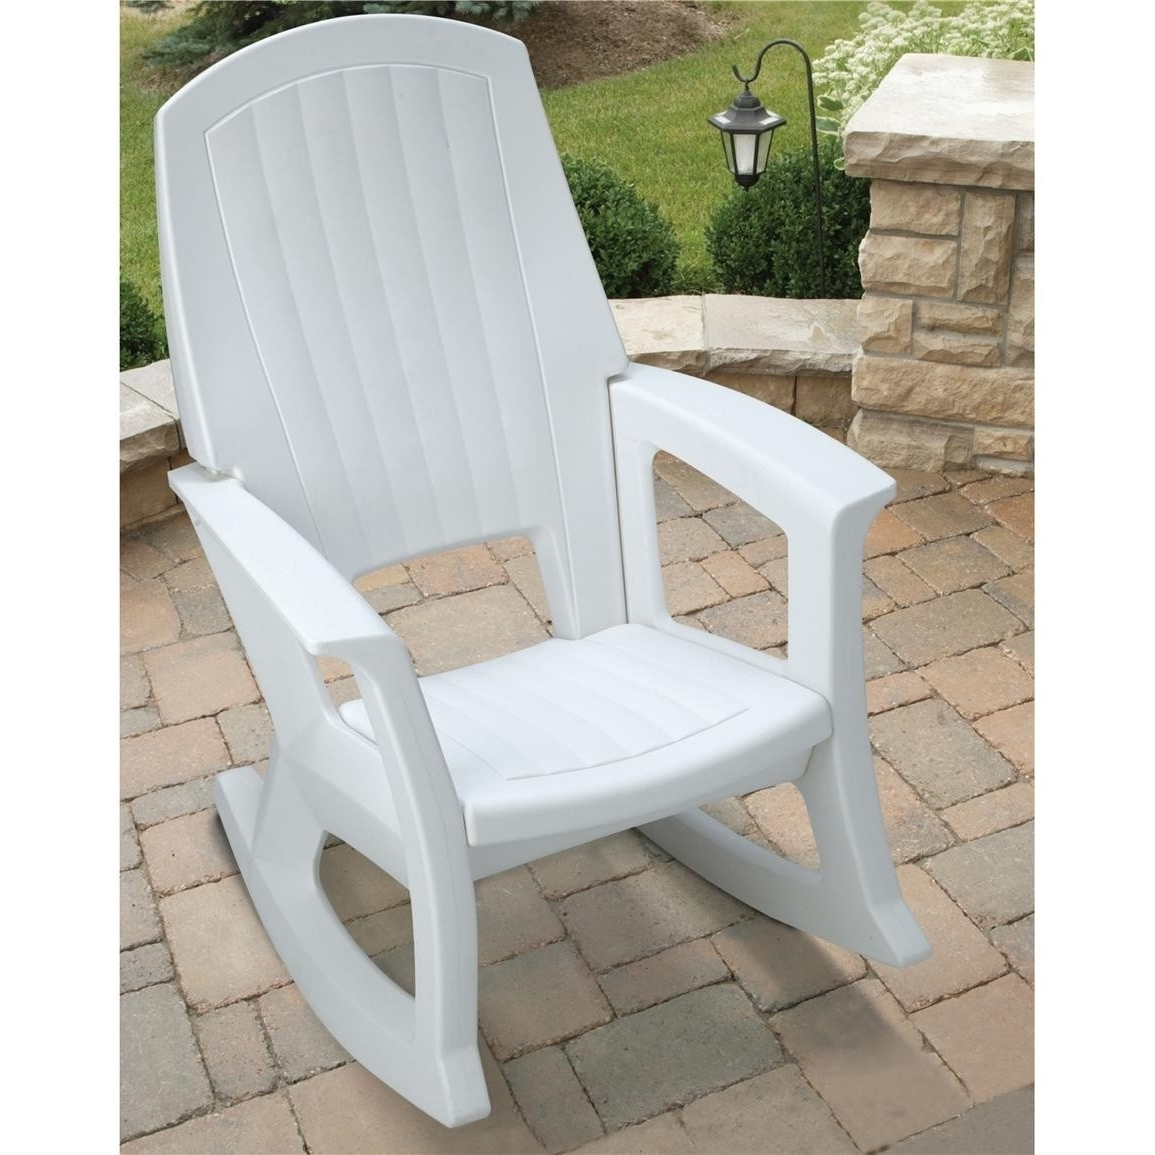 Resin Wicker Patio Rocking Chairs For 2019 Semco Plastics White Resin Outdoor Patio Rocking Chair Semw Rural (View 8 of 20)